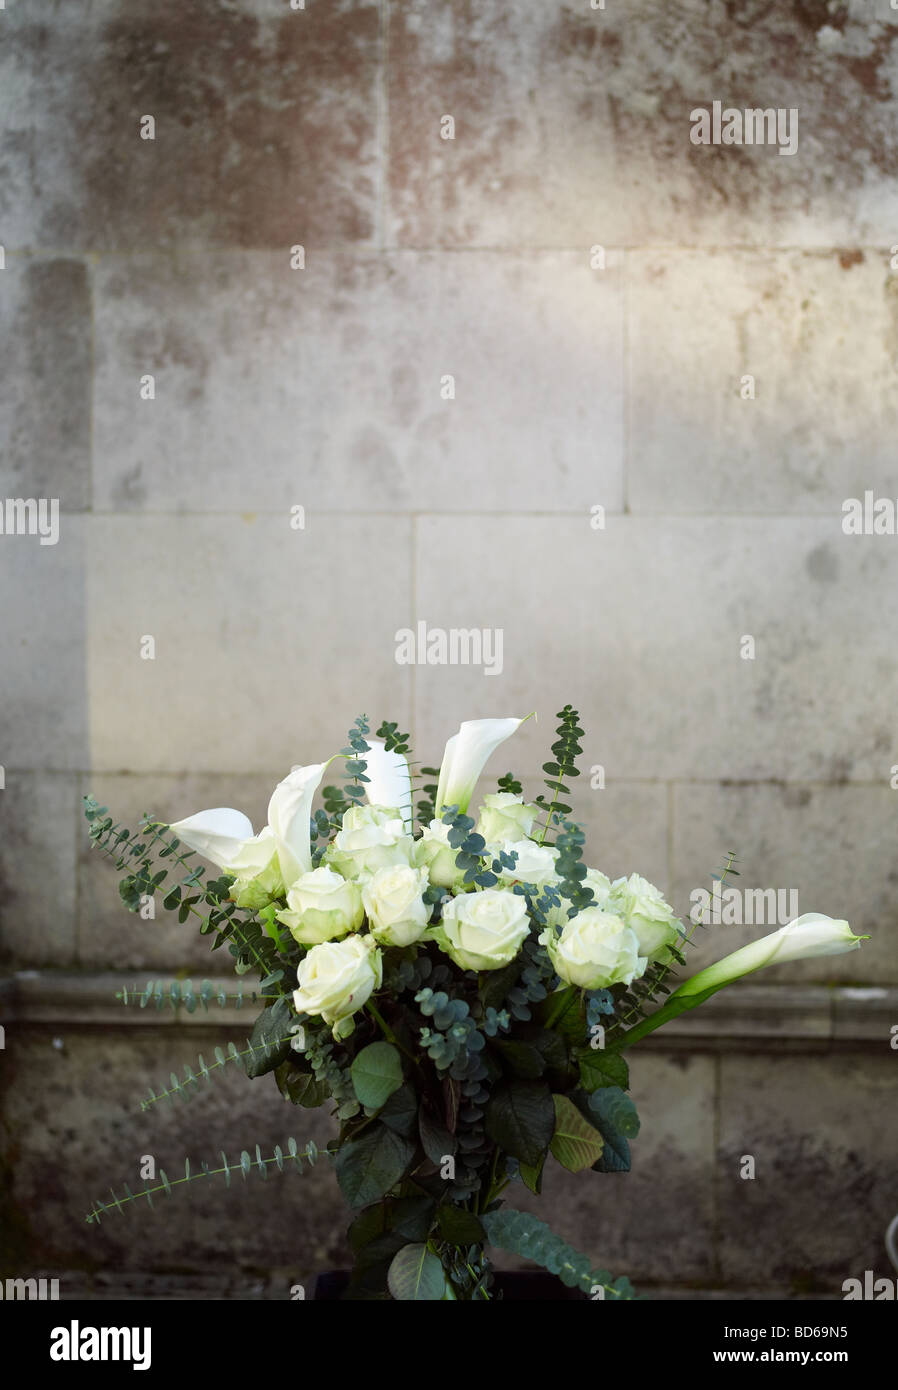 Wedding Flowers White Roses Arum Lilies And Eucalyptus Green